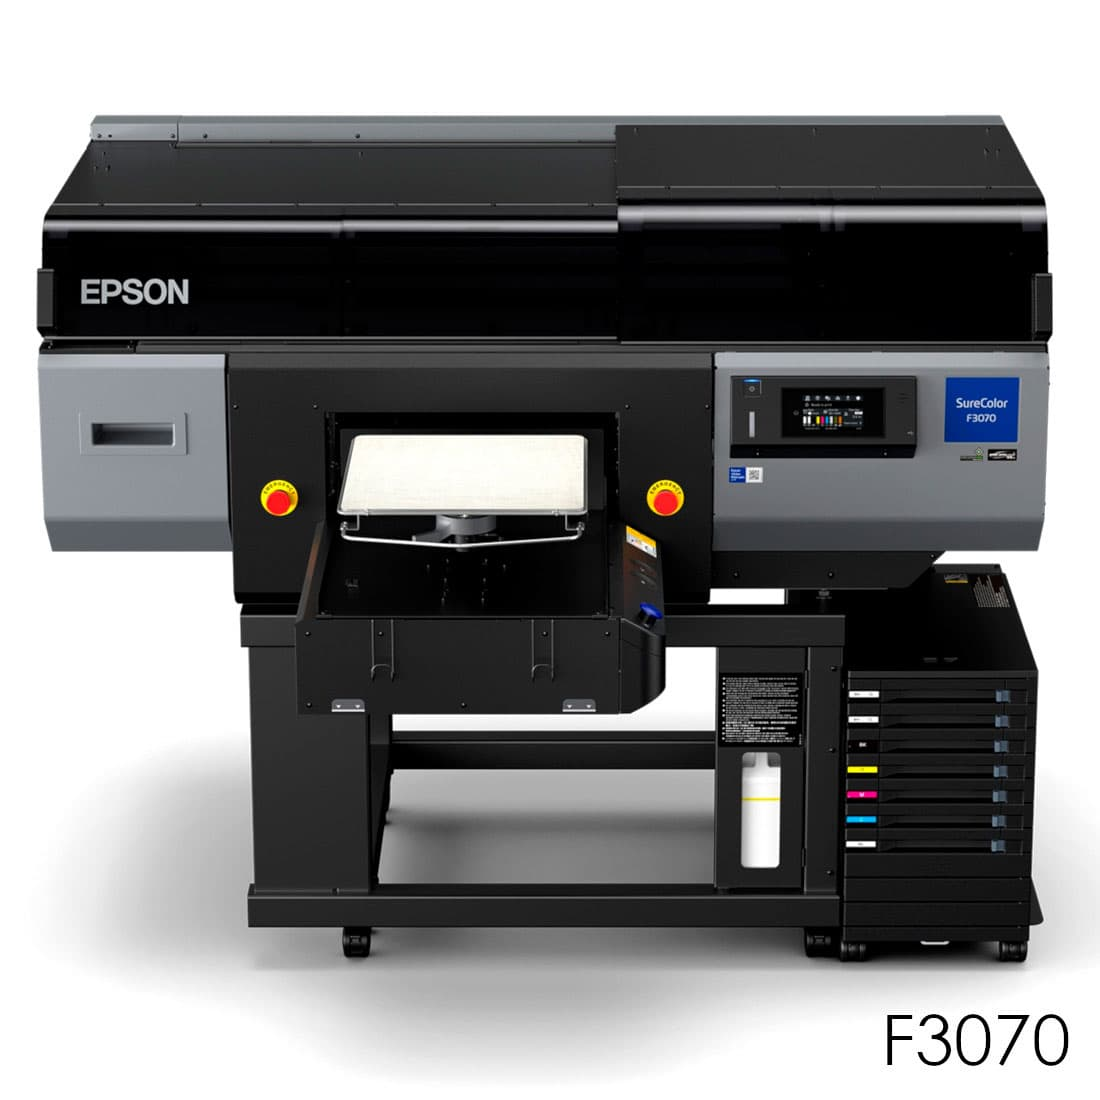 SureColor F3070 direct-to-garment printer of Epson